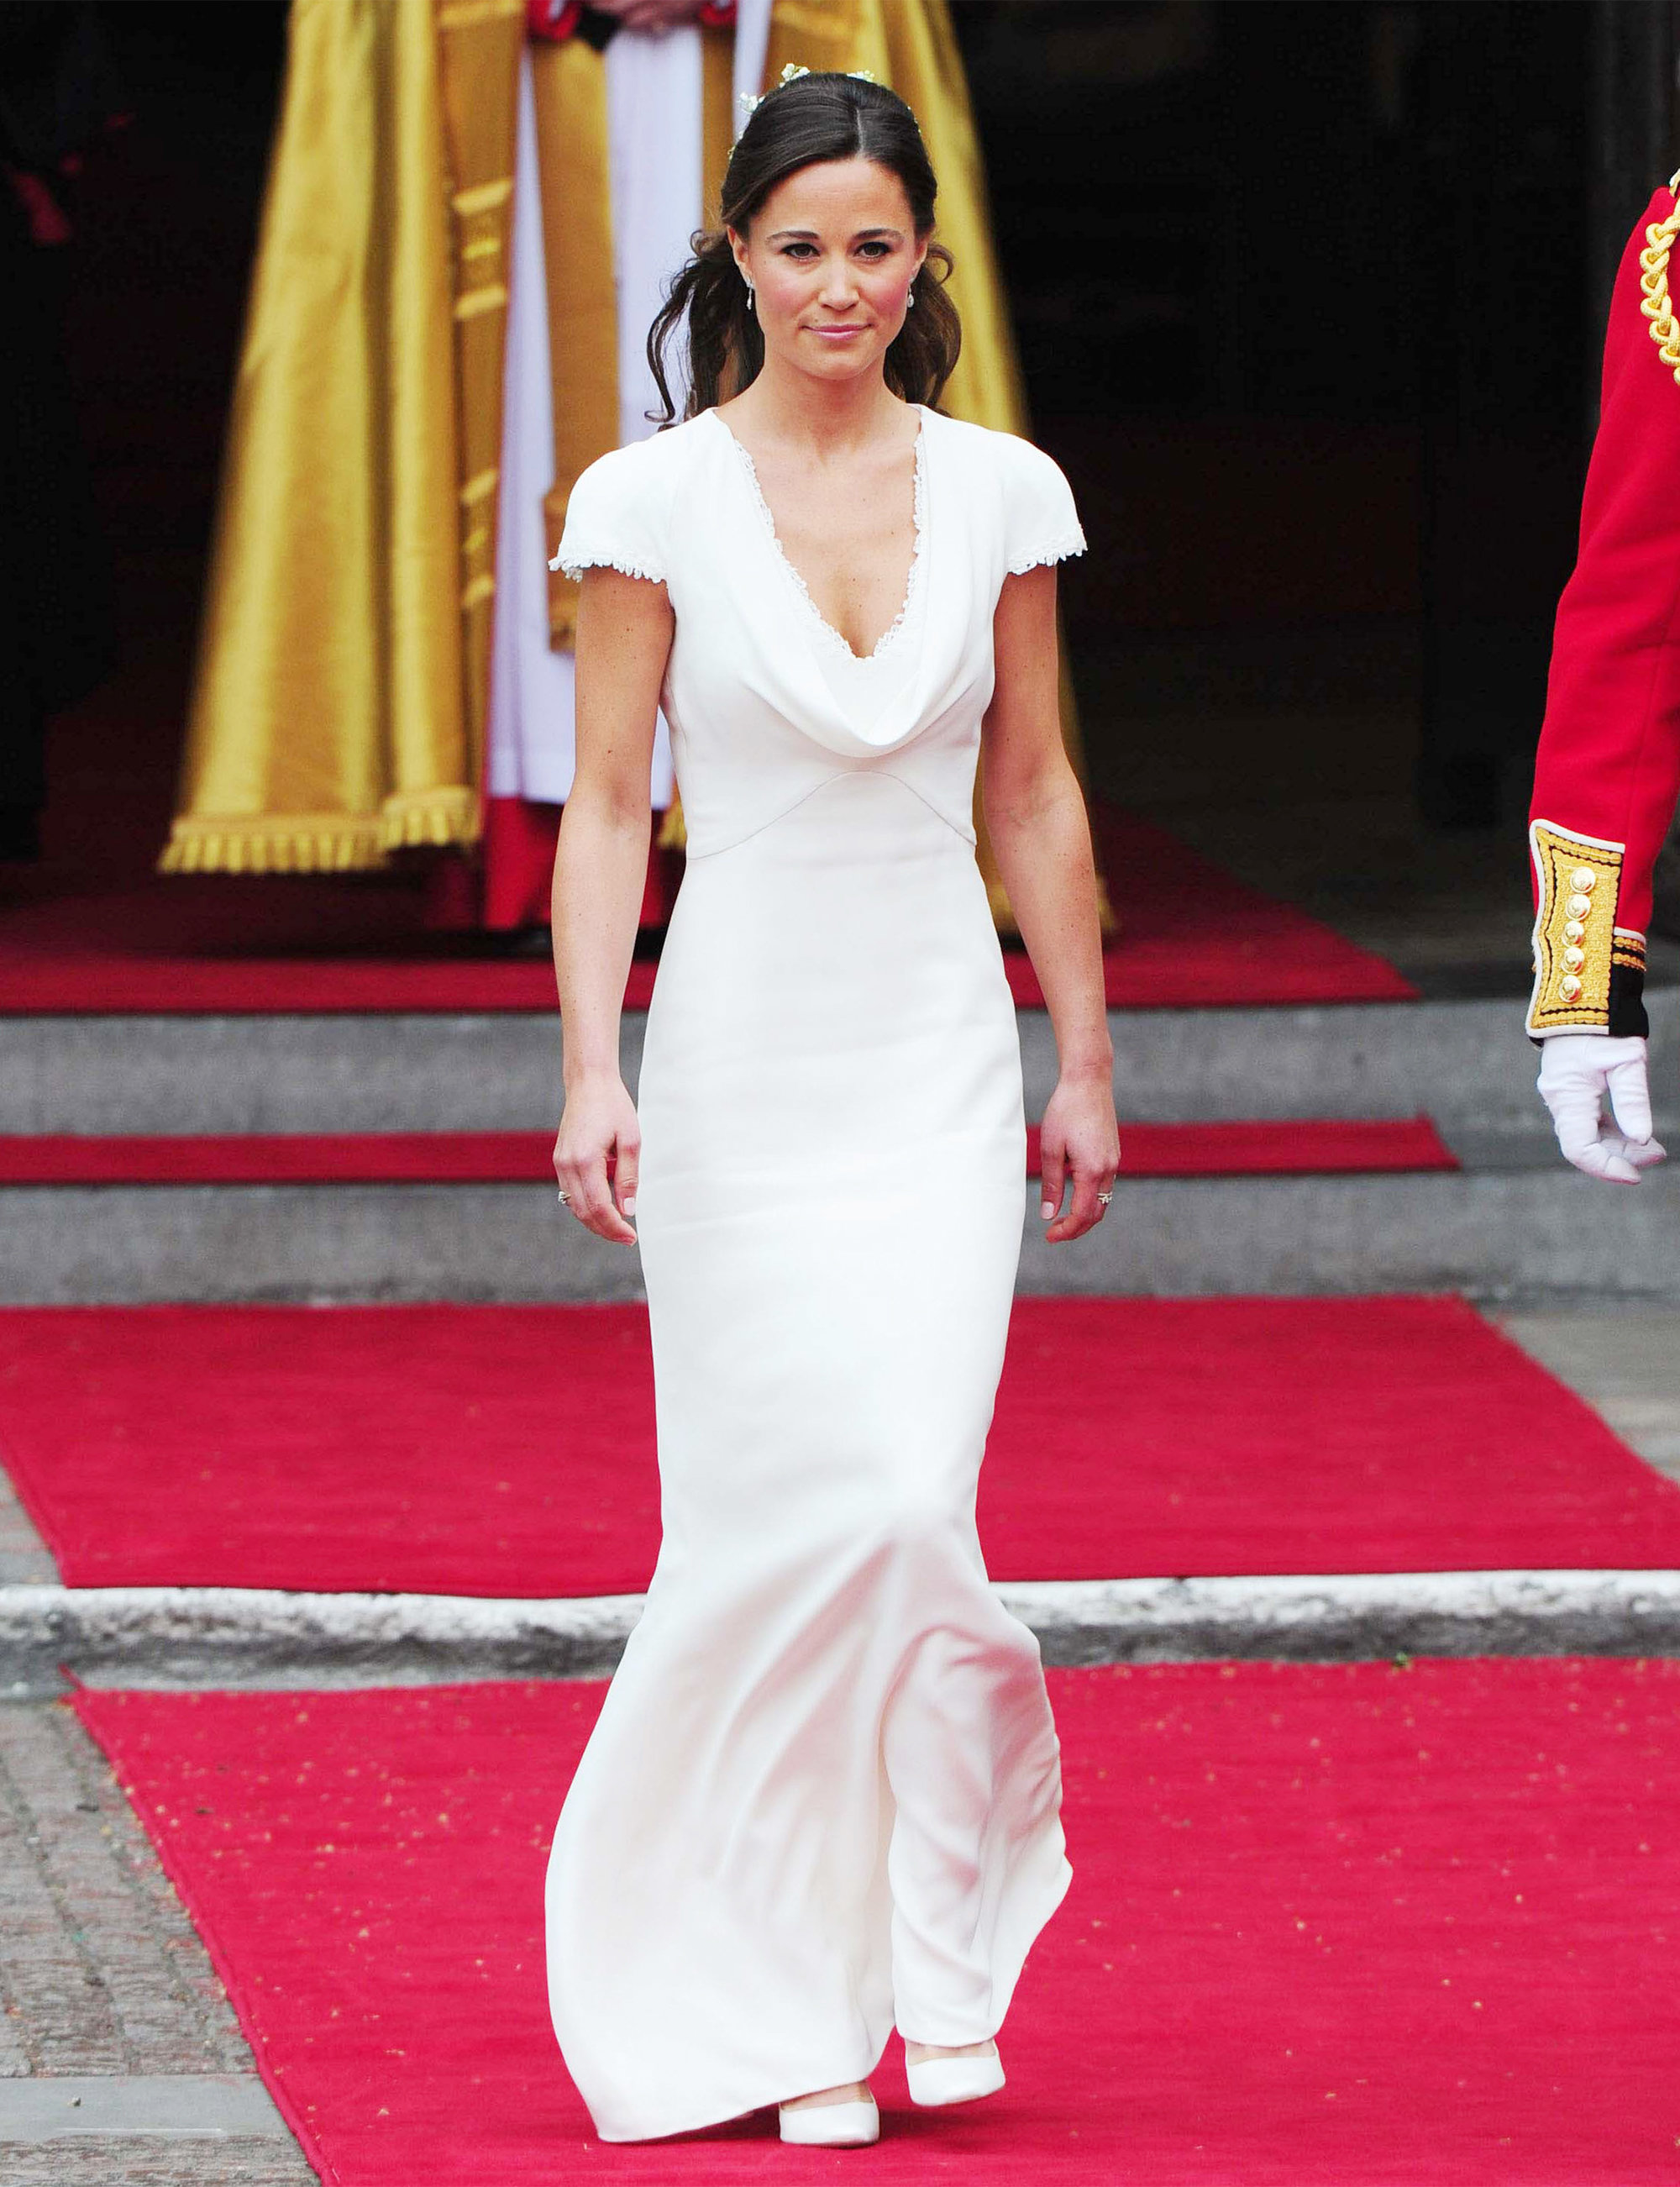 Wedding Pippa Middleton Wedding Dress buy pippa middletons royal wedding bridesmaids dress on sale instyle com